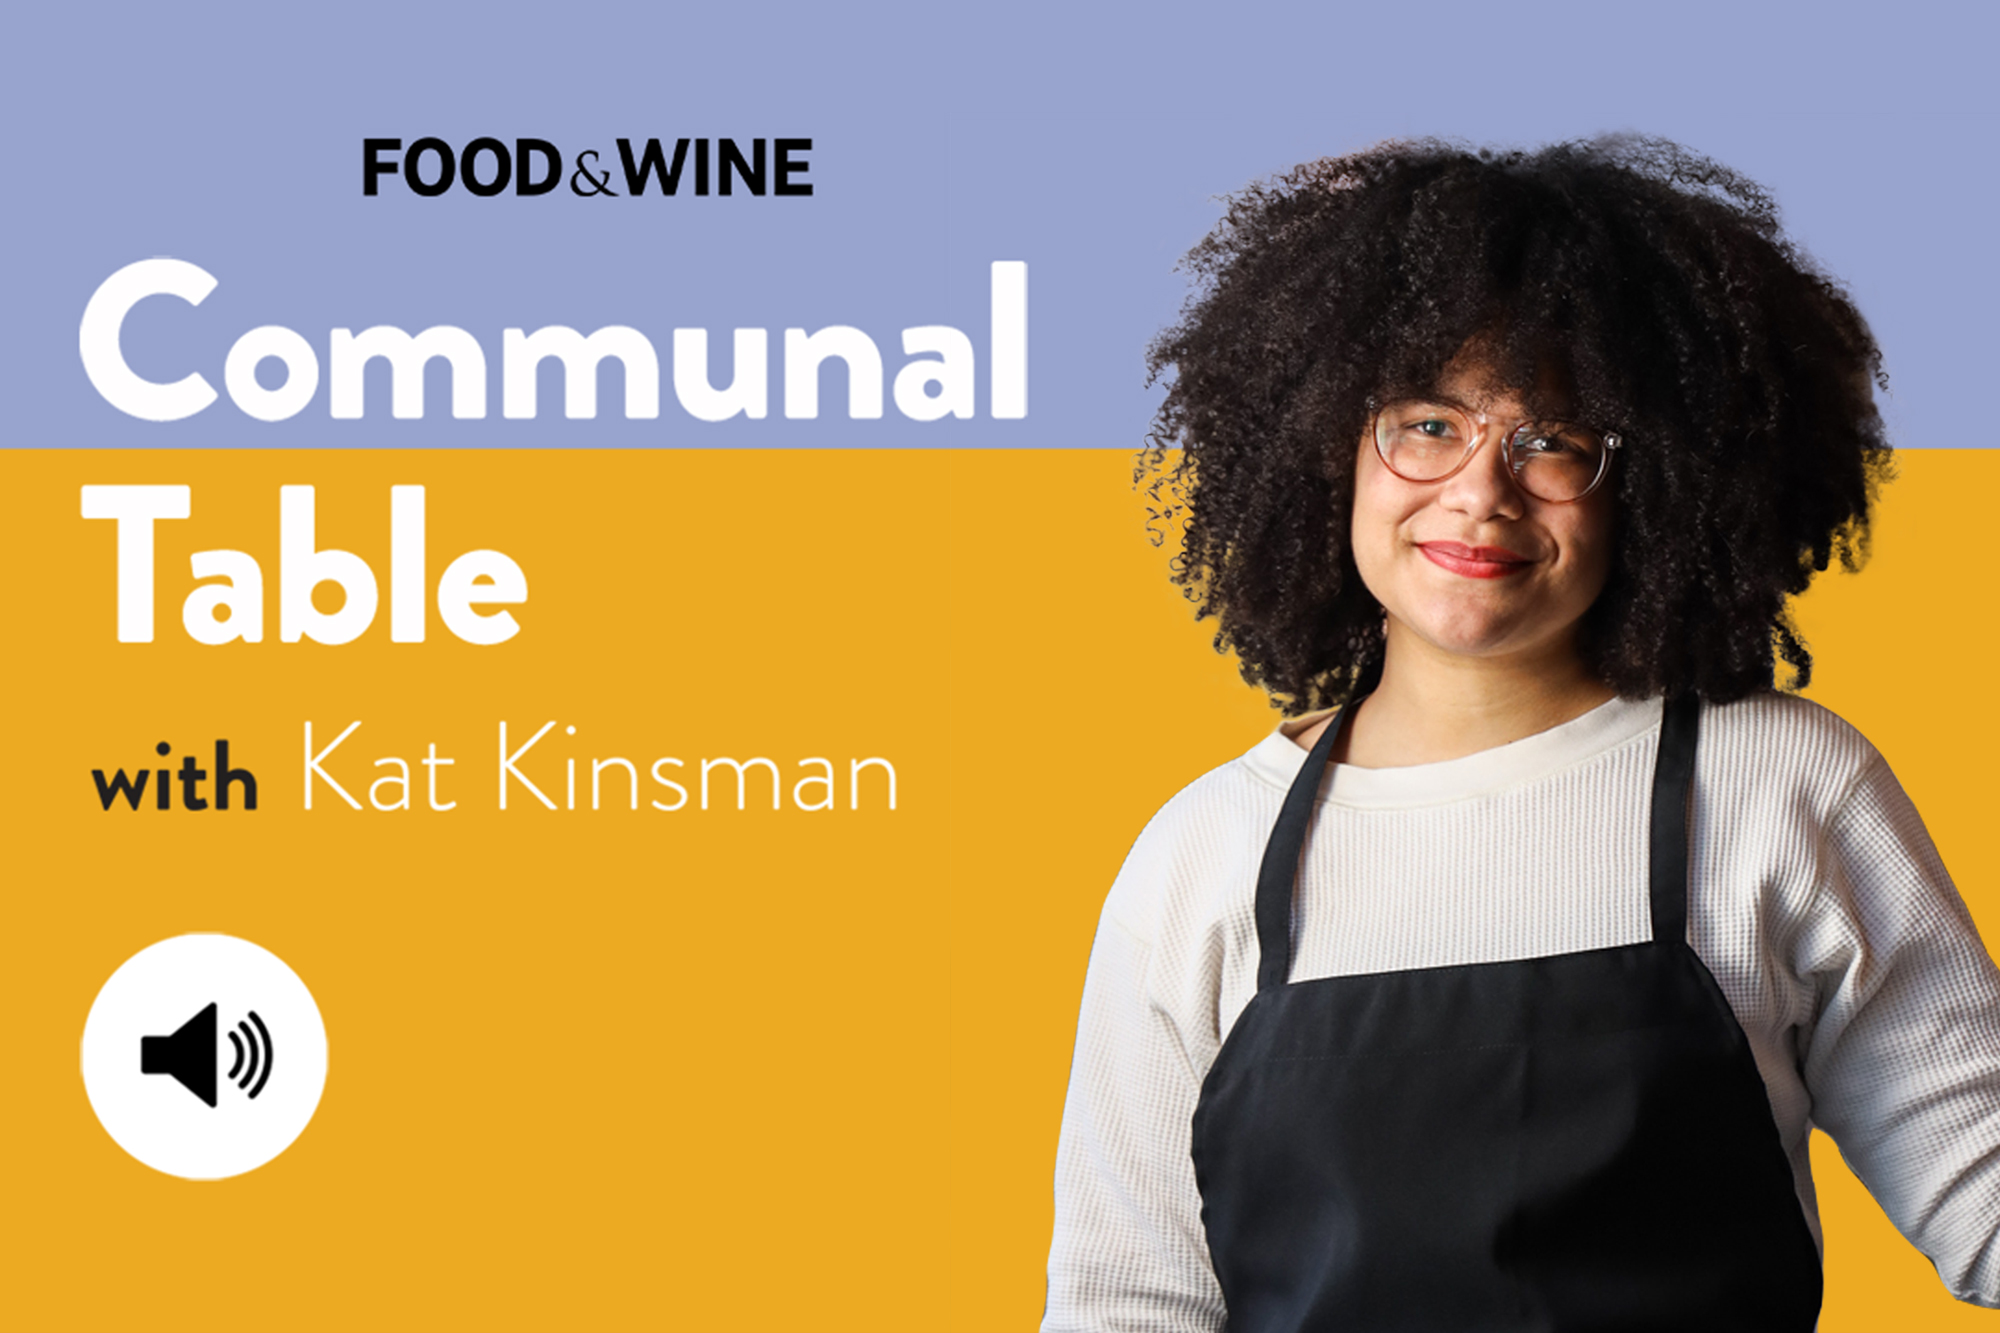 Communal Table with Kat Kinsman featuring Paola Velez